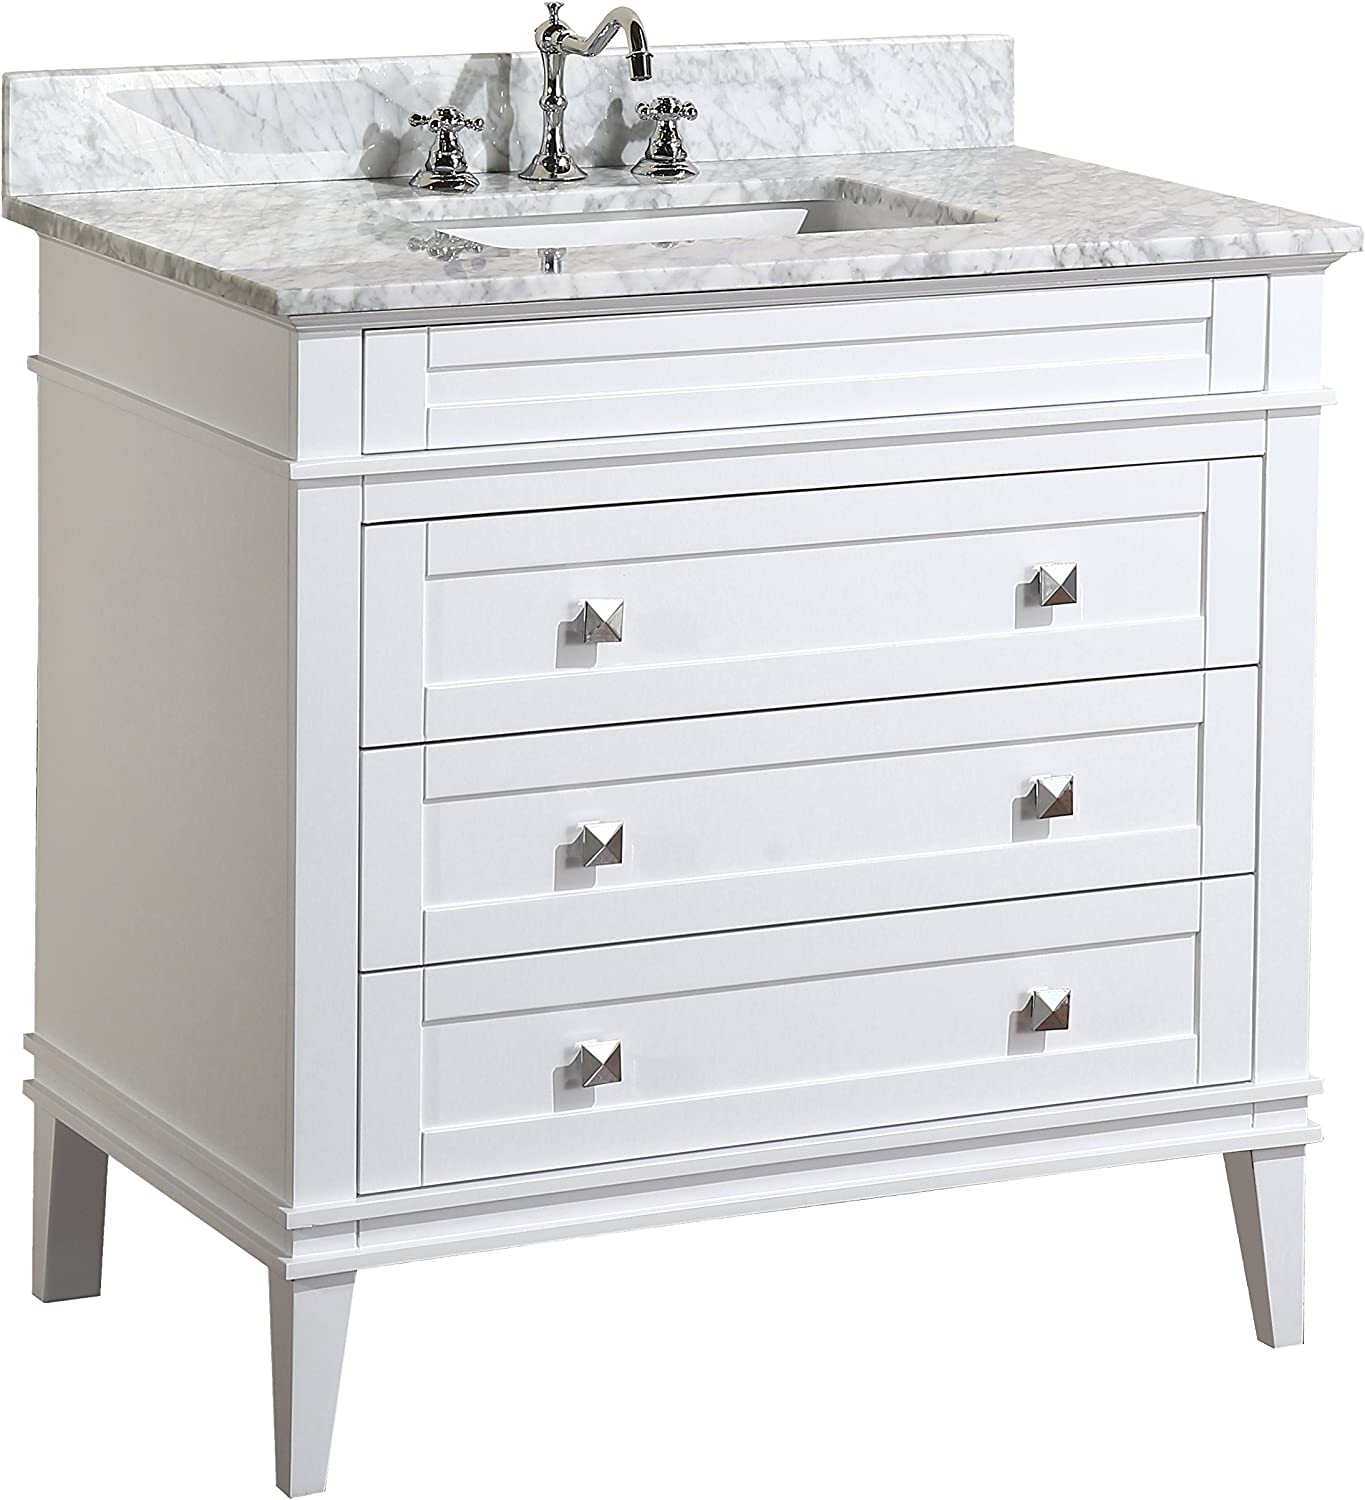 Eleanor 36-inch Bathroom Vanity Carrara White Includes a White Cabinet, Soft Close Drawers, a Natural Italian Carrara Marble Countertop, and a Ceramic Sink